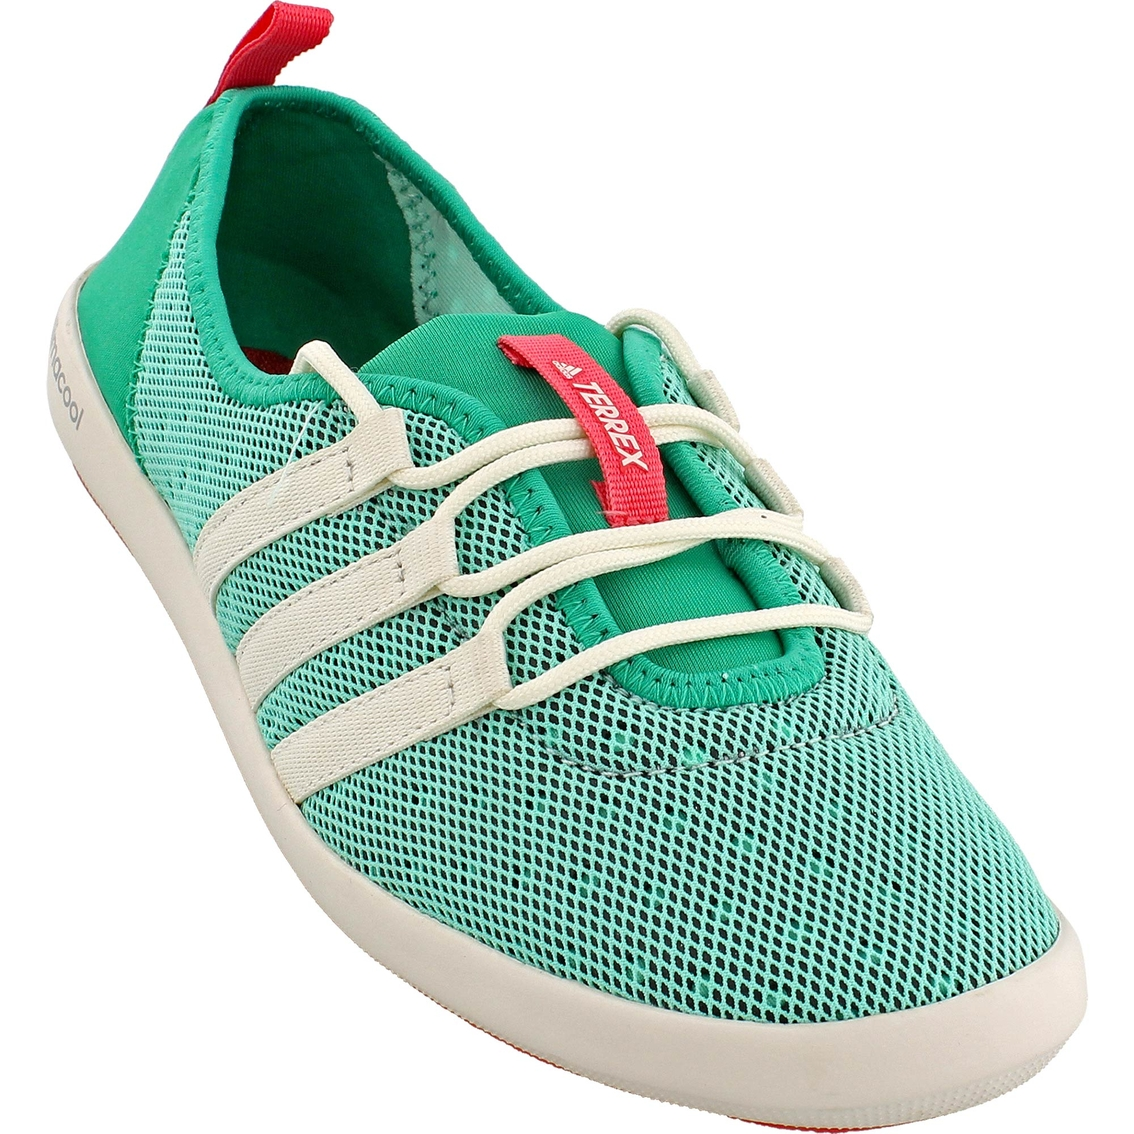 Adidas Outdoor Women's Climacool Boat Sleek Shoes   Sneakers ...